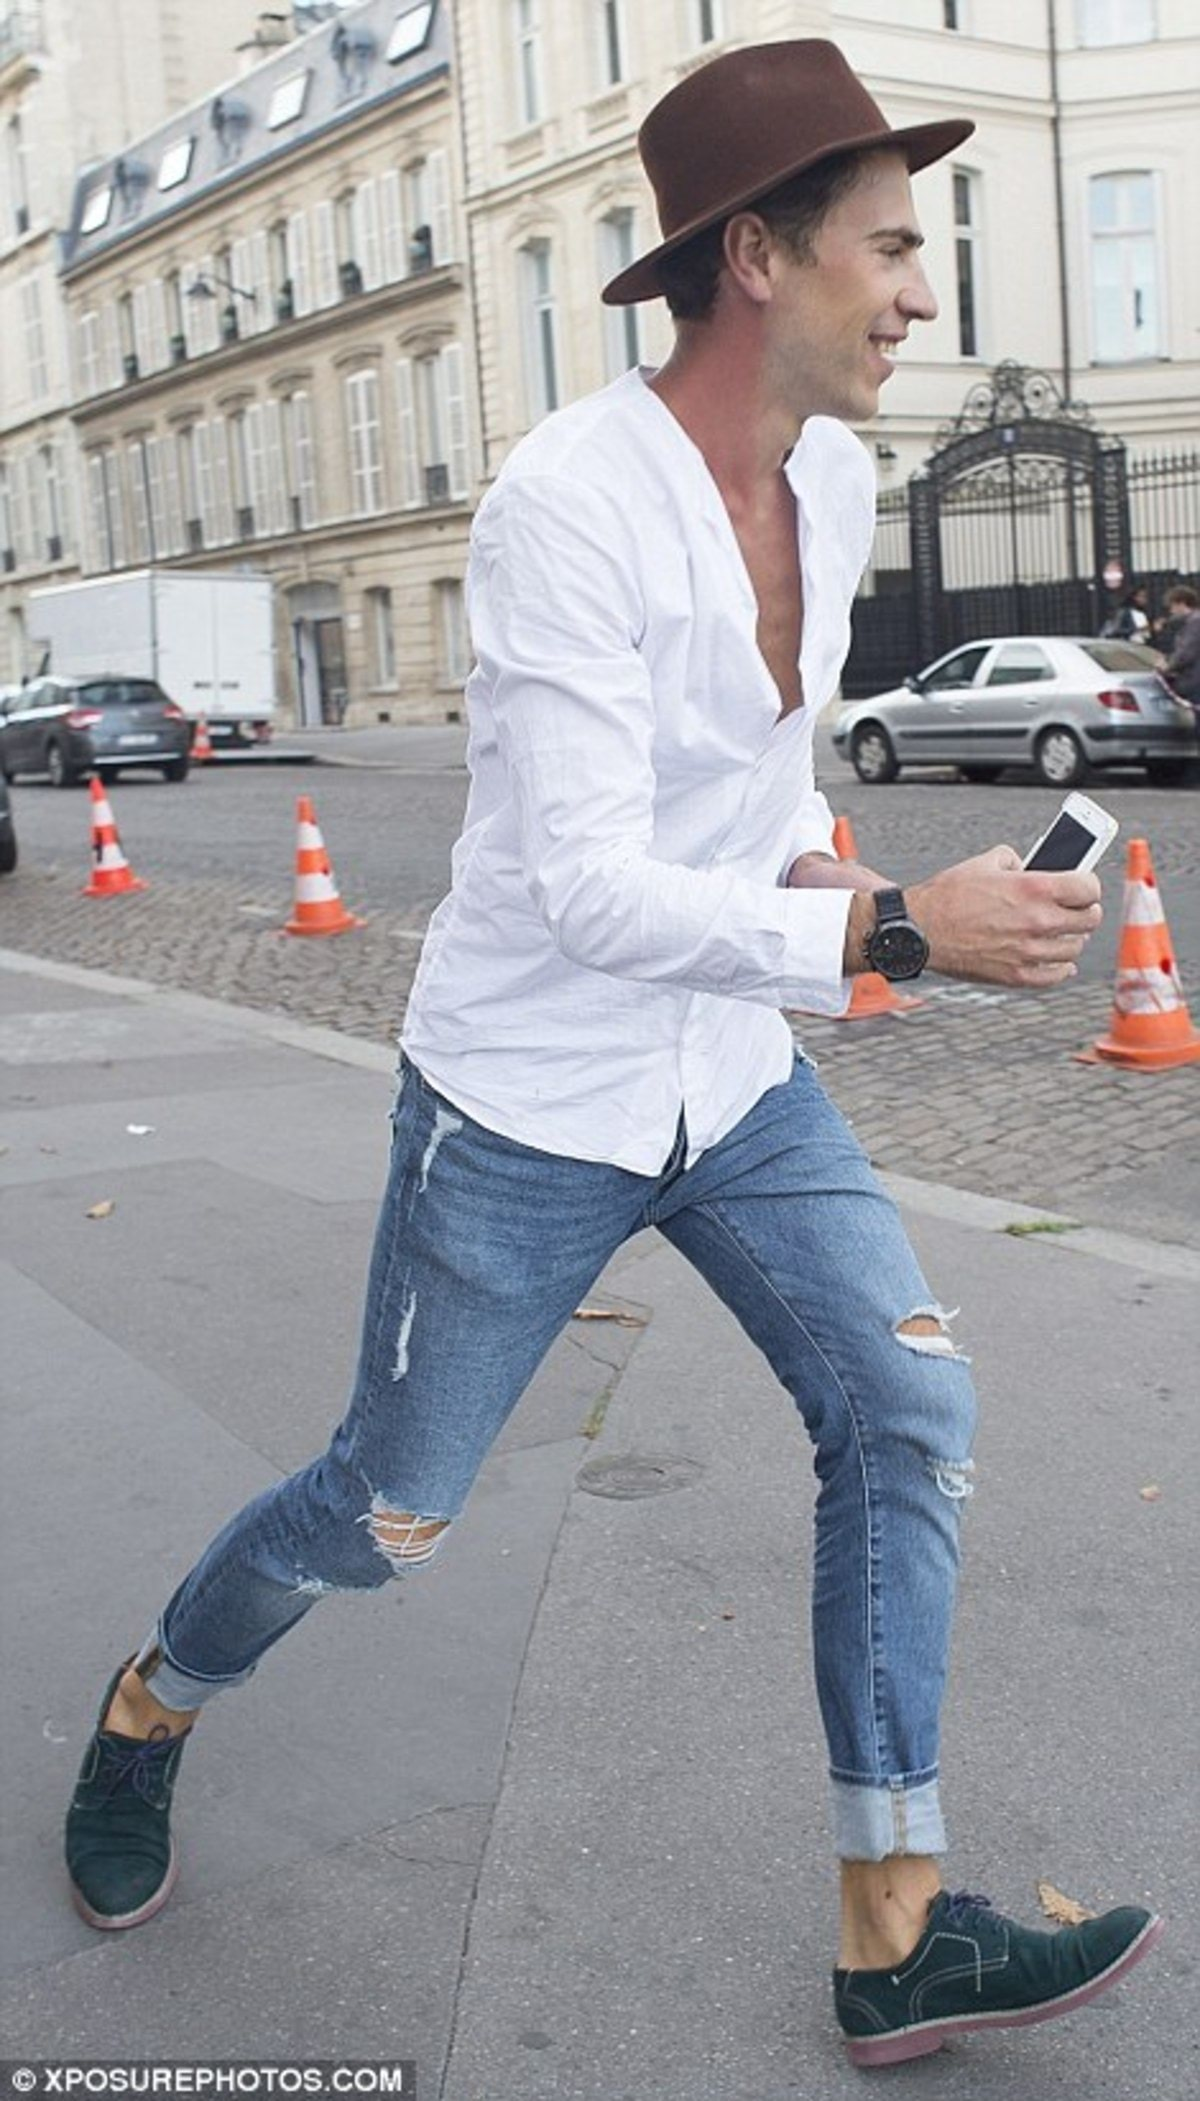 38E2EE4E00000578-3811953-Is_he_funny_Vitalii_was_seen_lurking_around_Paris_before_Kim_s_a-a-98_1475088202493